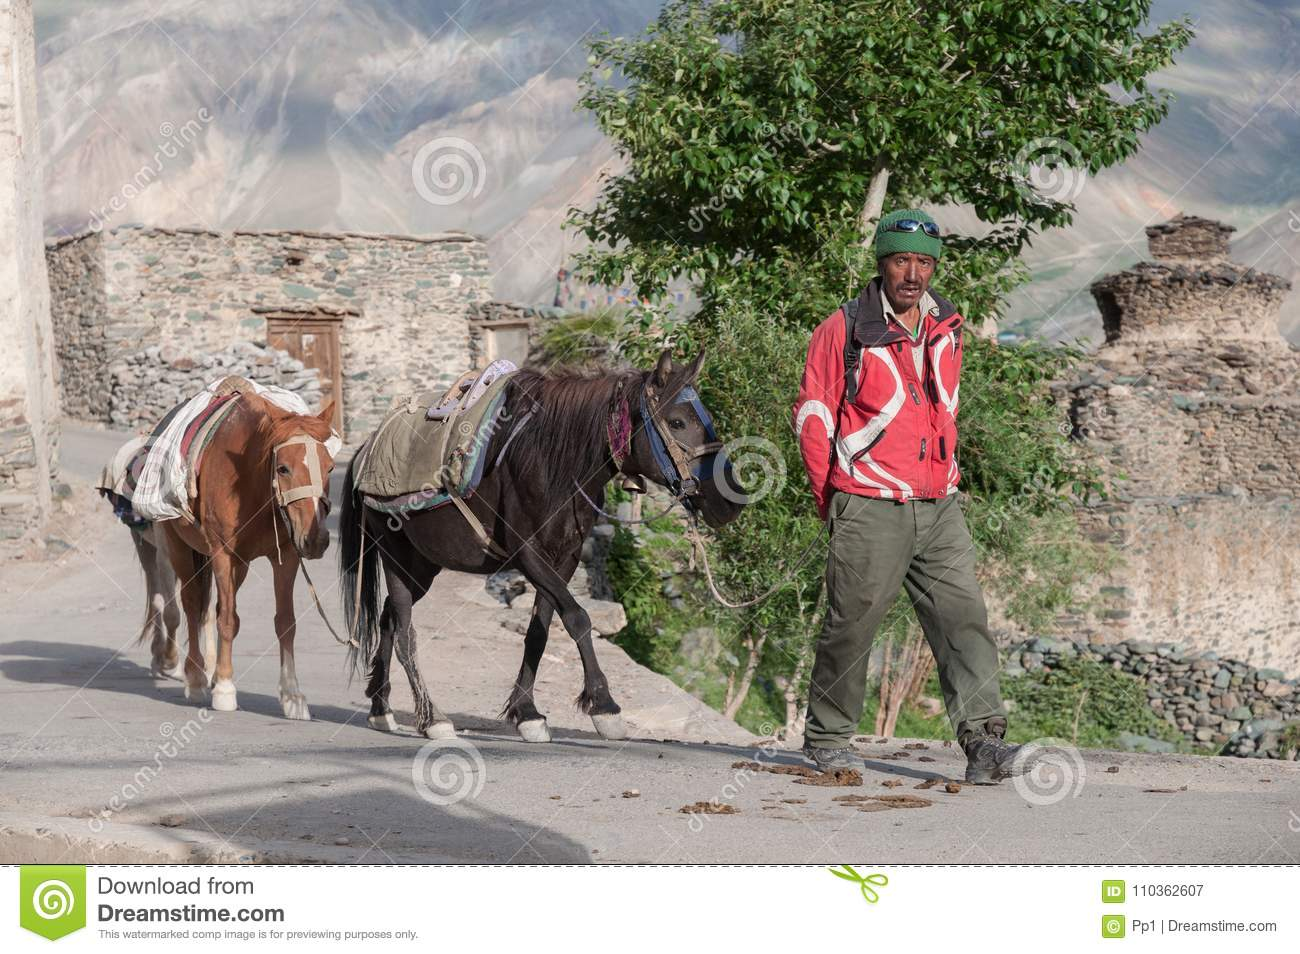 Man with horses, villager in Ladakh India mountain region